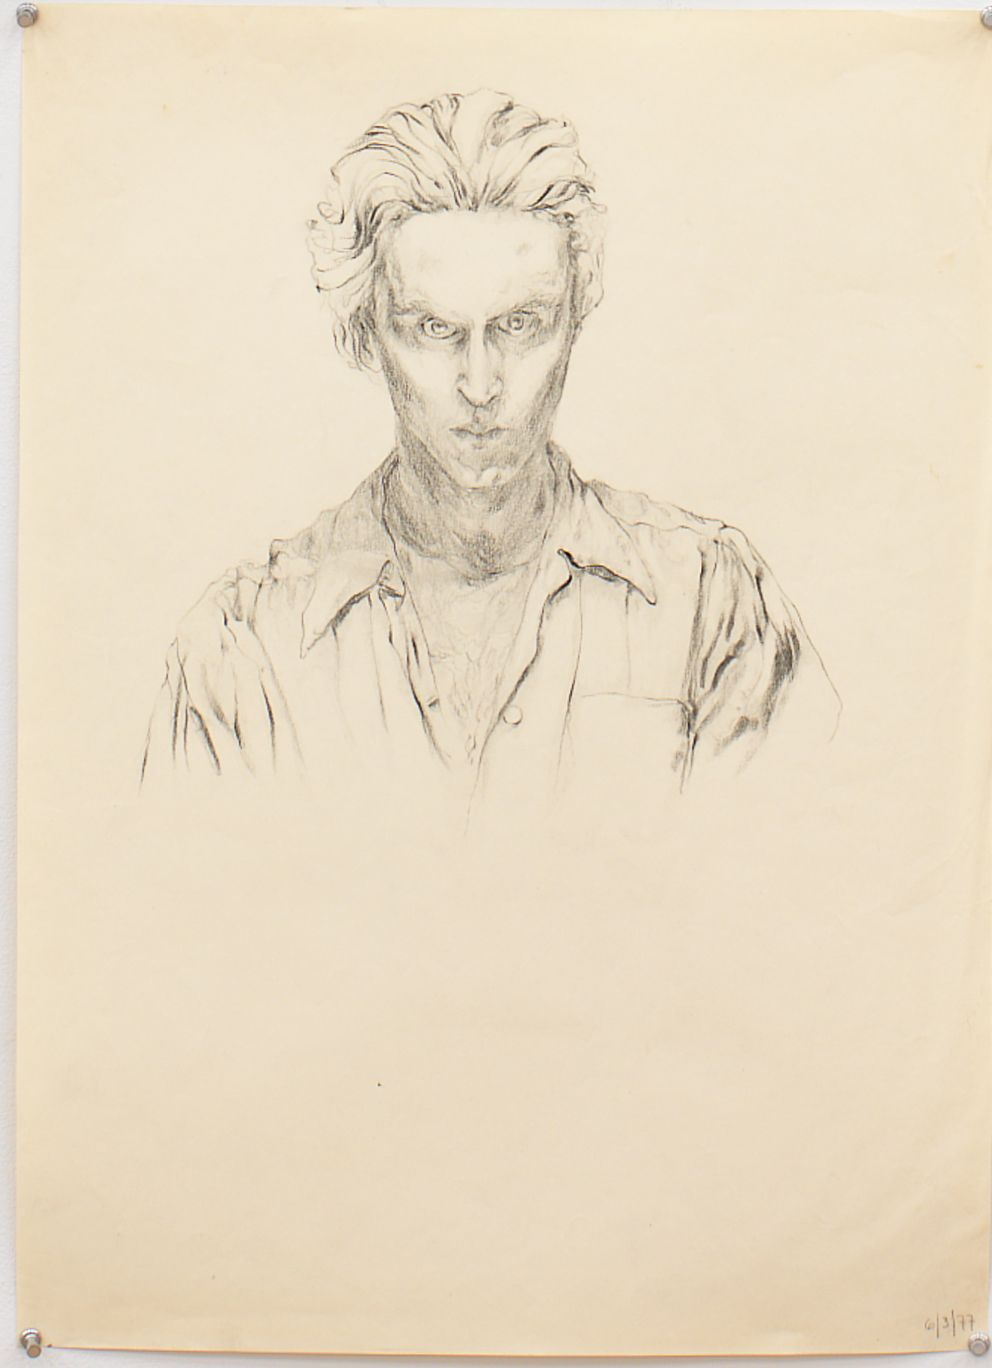 Untitled III, 1977, Graphite on paper